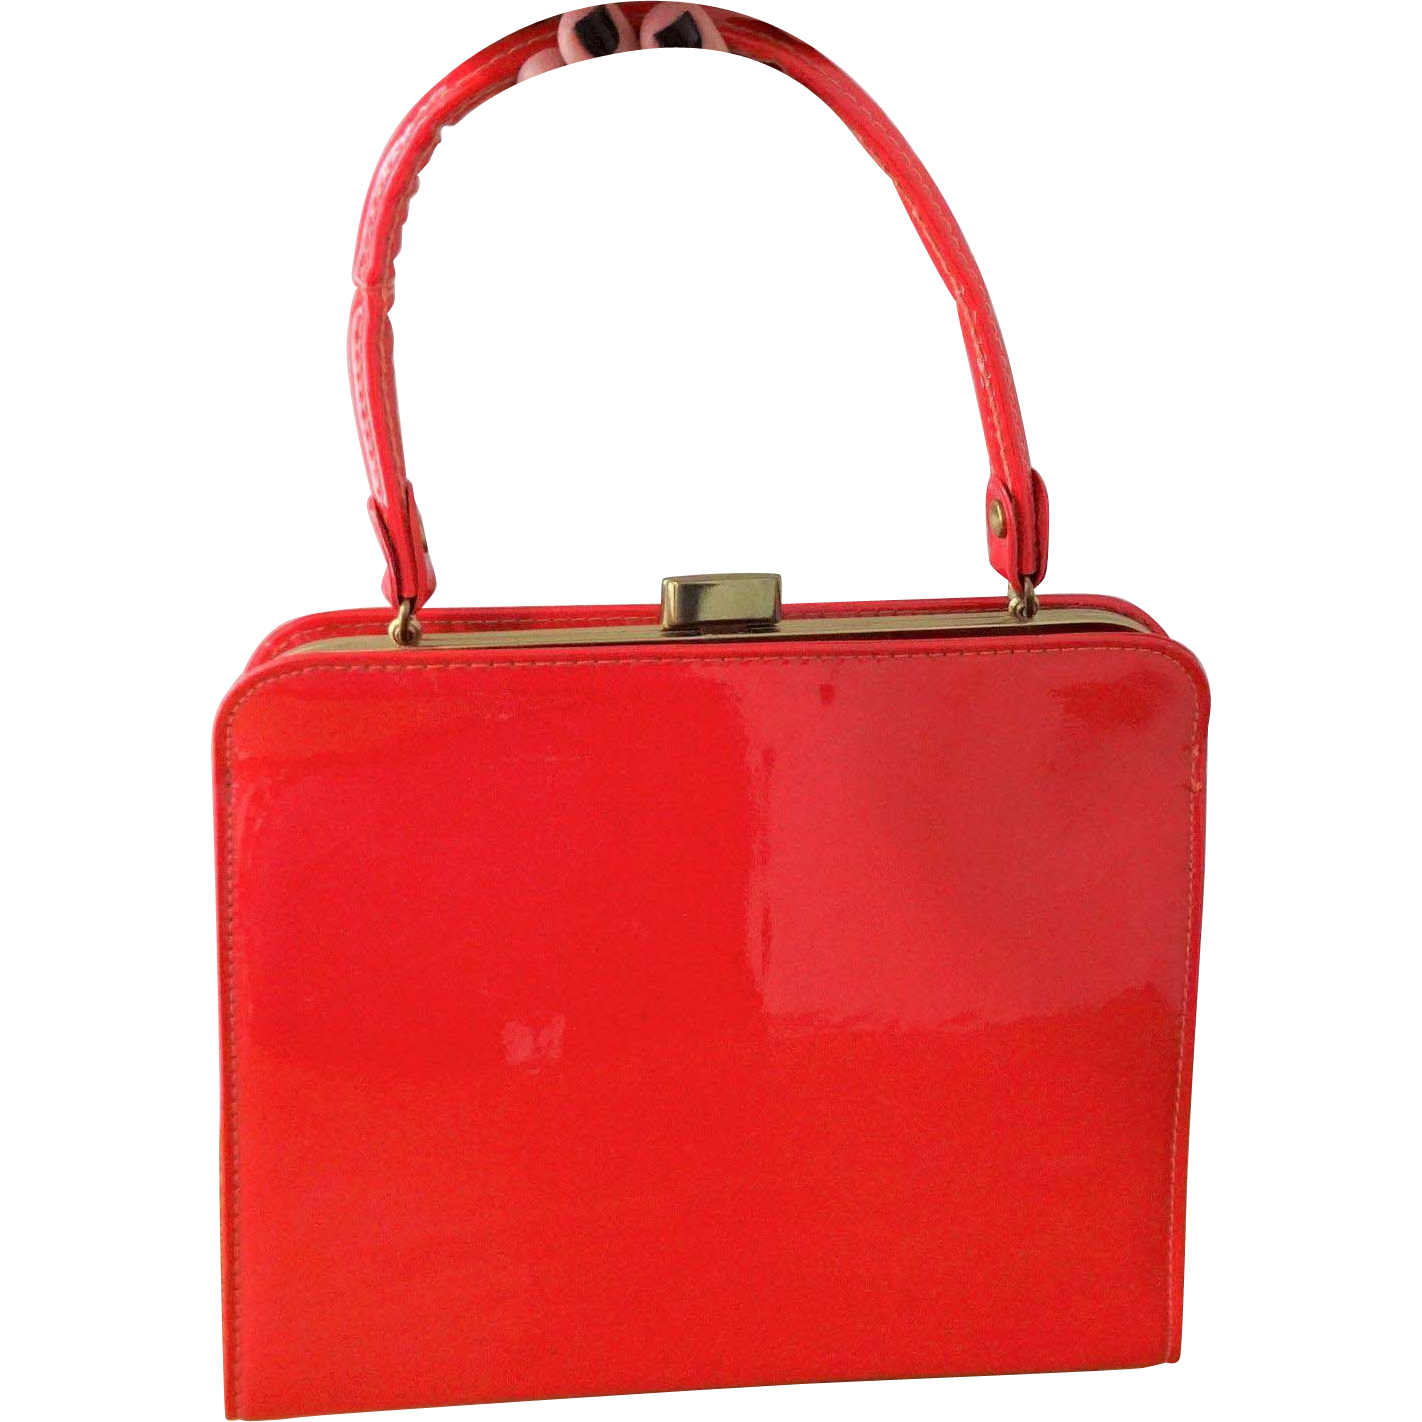 Red Patent Leather Kelly Bag Purse Vintage 1950s Womens Holiday ...